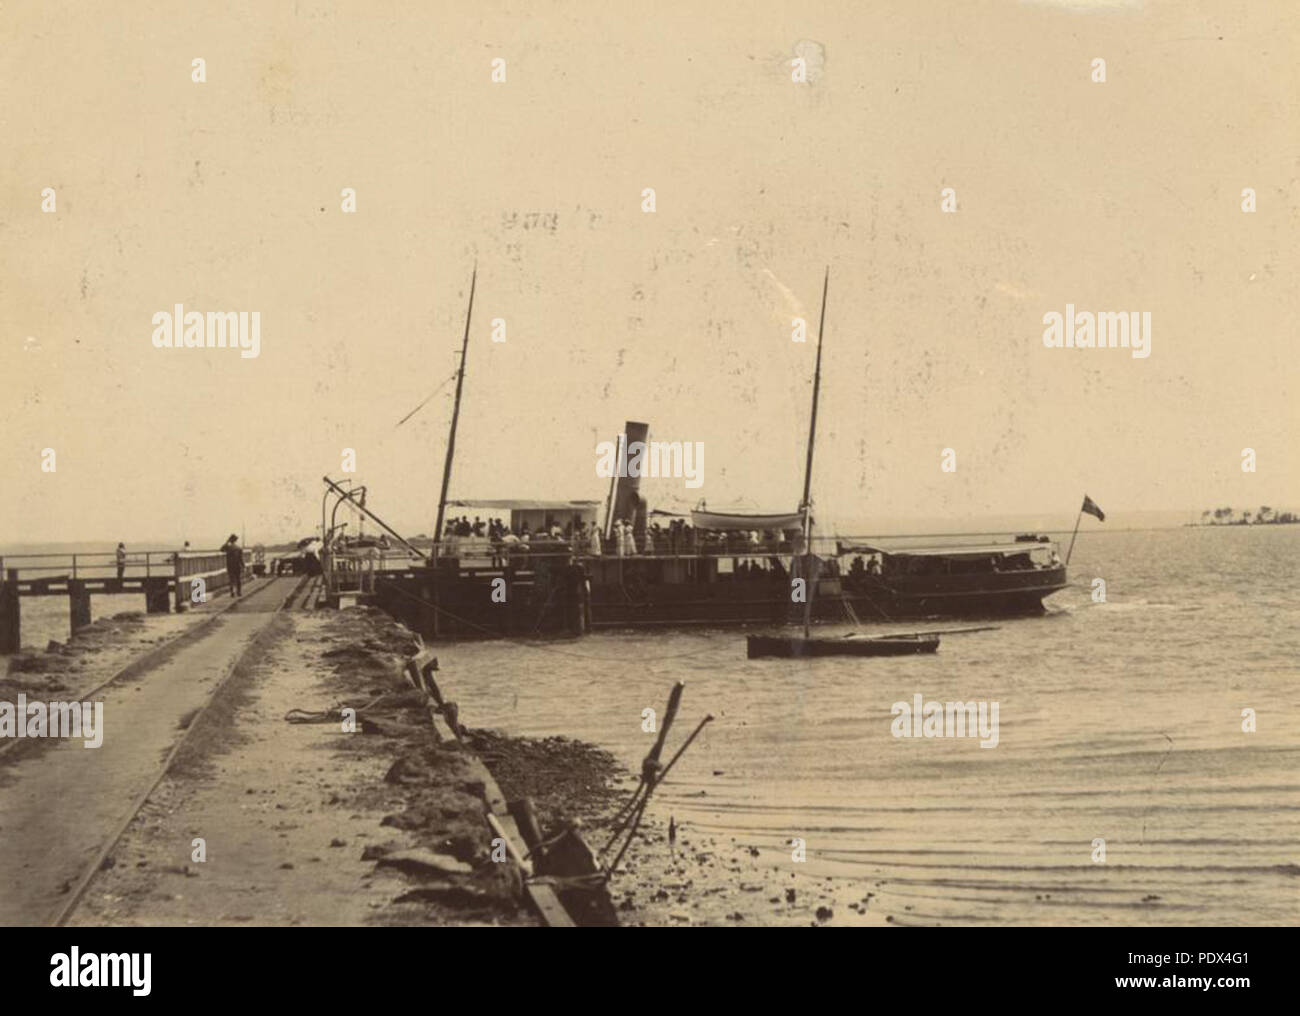 253 StateLibQld 1 235133 Passenger steamship docked at the Dunwich Jetty, North Stradbroke Island, ca. 1890 - Stock Image